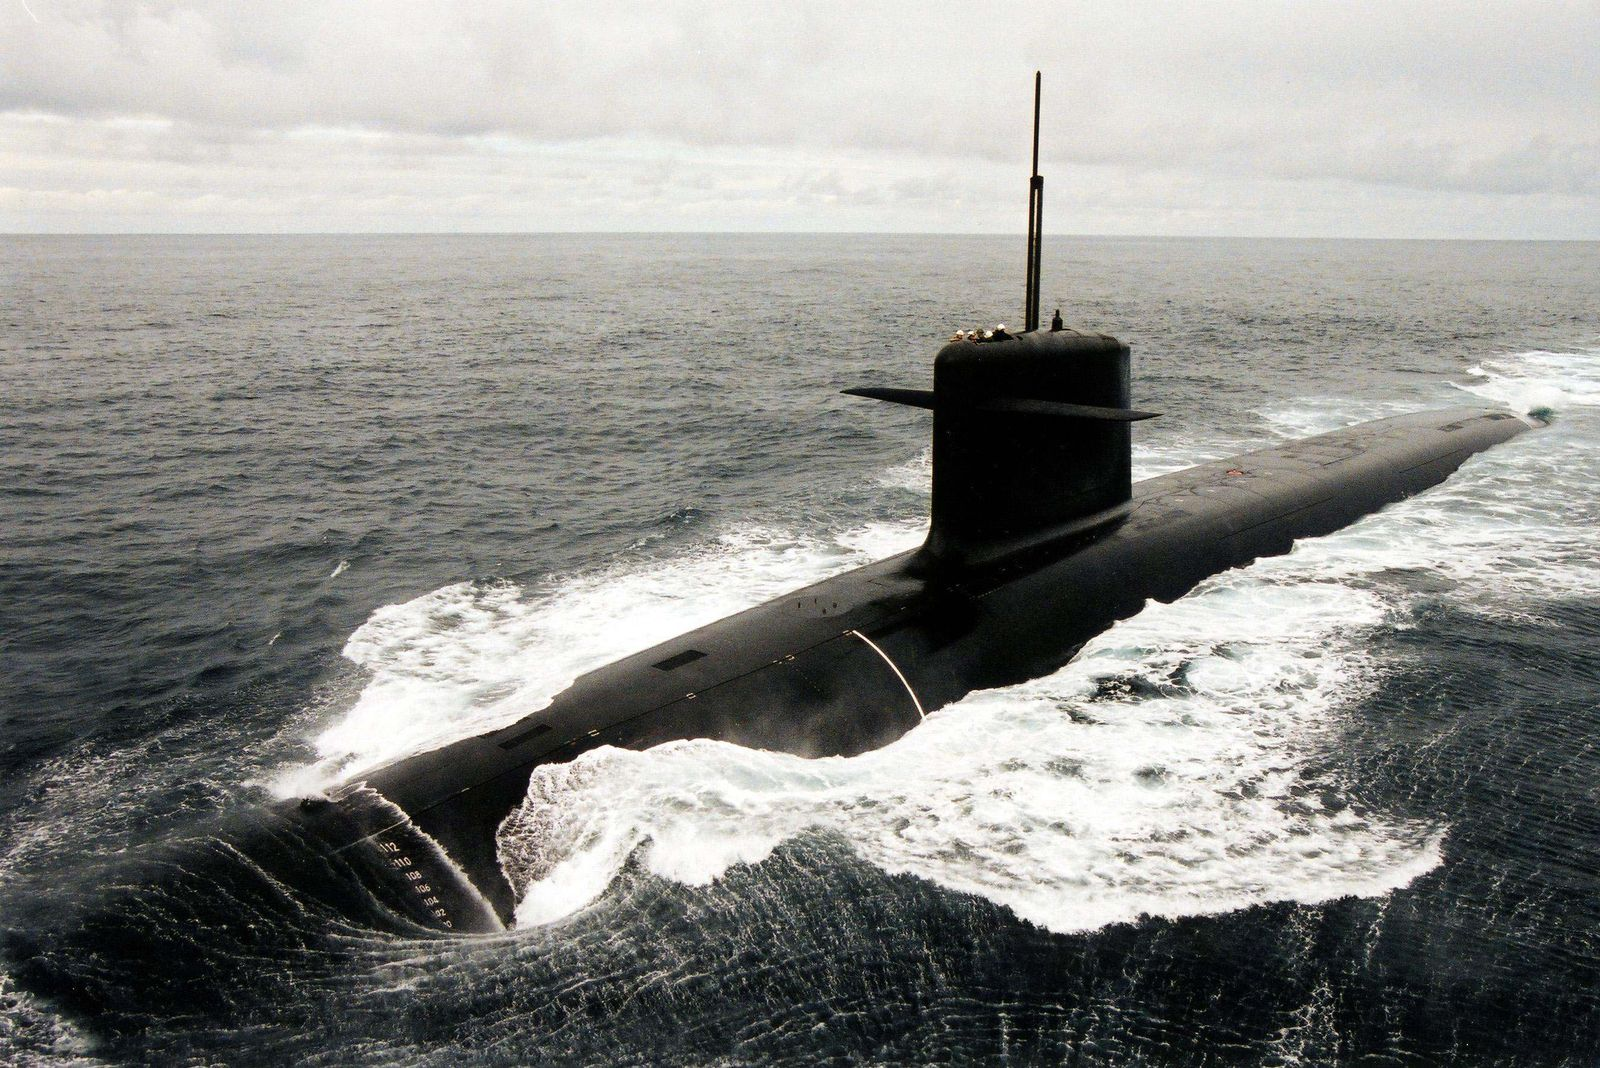 nuclear weapons U-boot